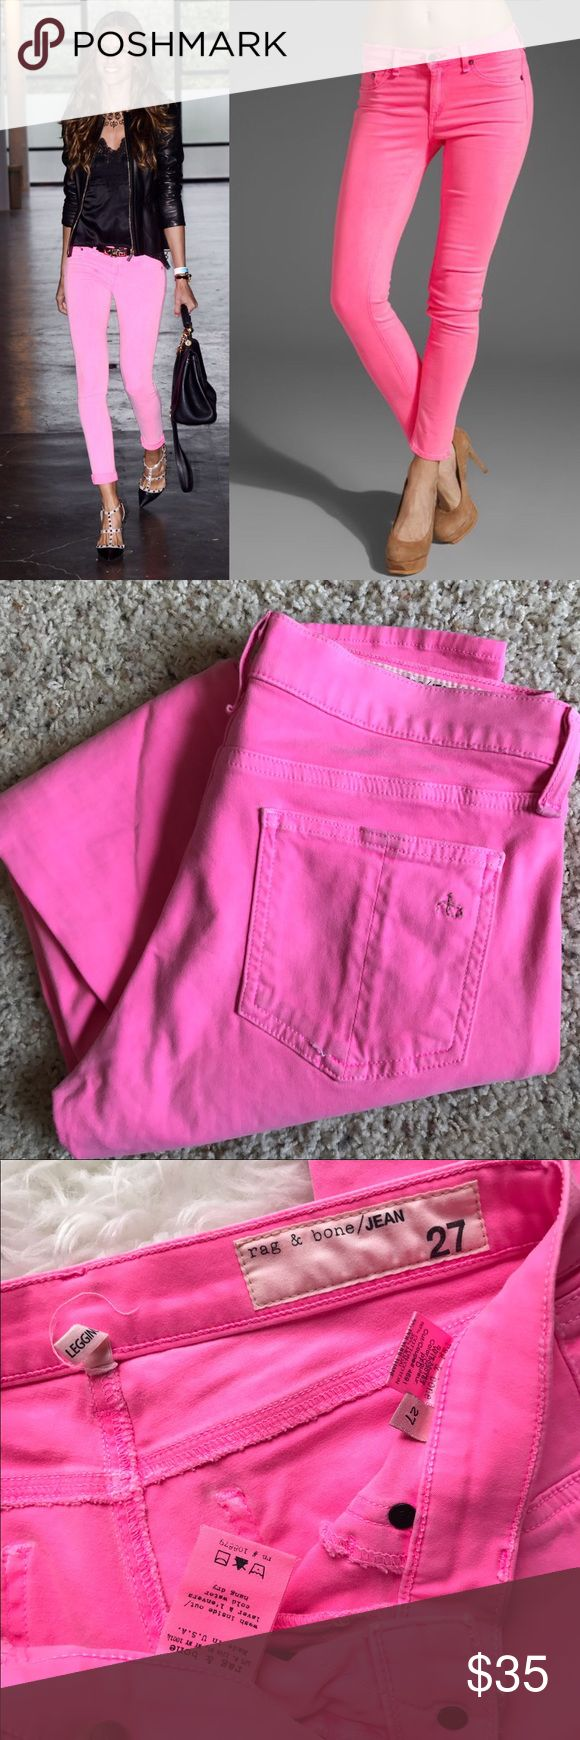 """Rag & Bone Legging Neon Pink In good used condition. Some pulled stitching (see pictures) but still in good, wearable condition. Some piling in thigh area. Inseam is approx 29"""" rag & bone Jeans"""